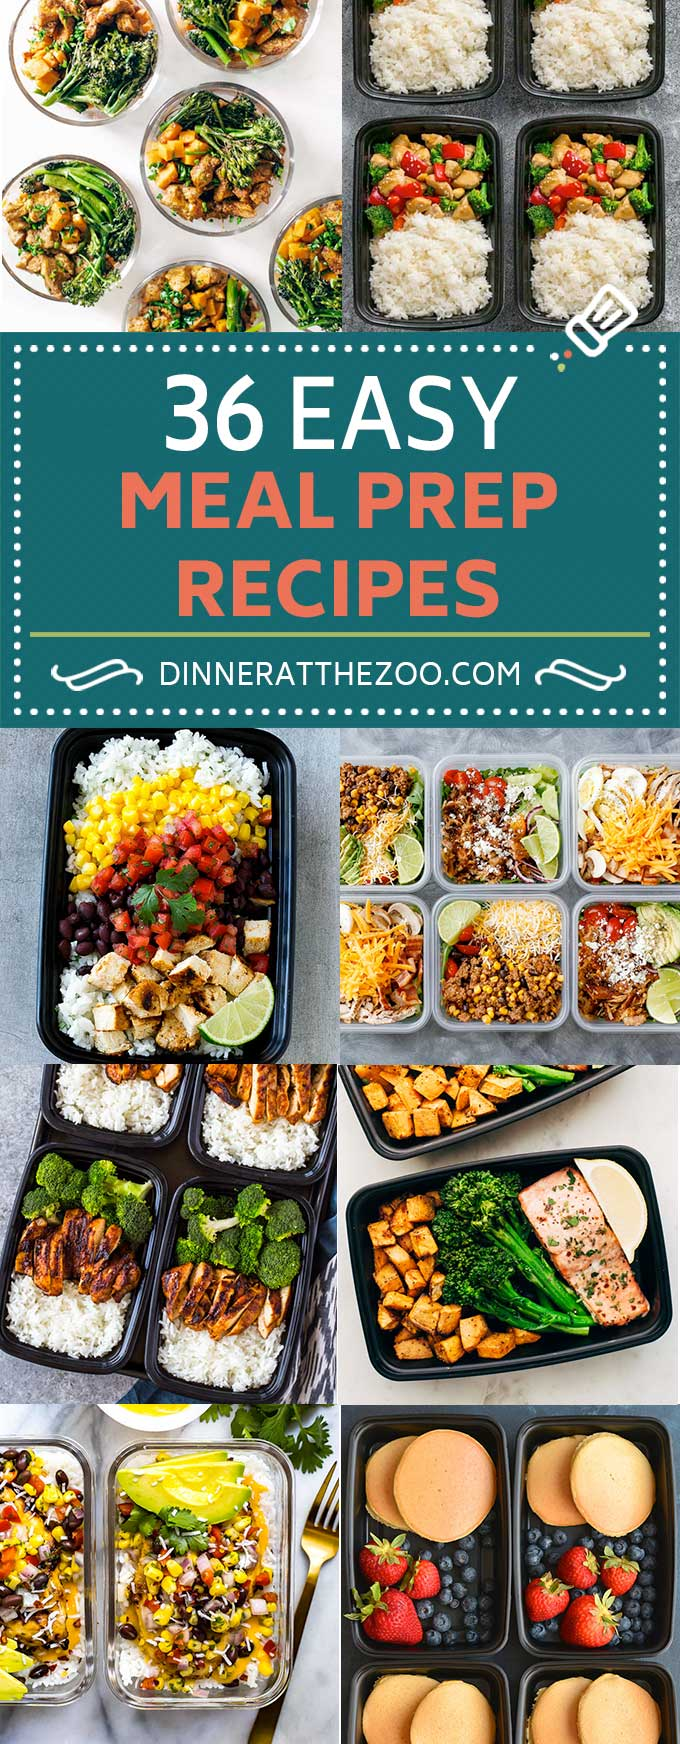 36 easy meal prep recipes - dinner at the zoo